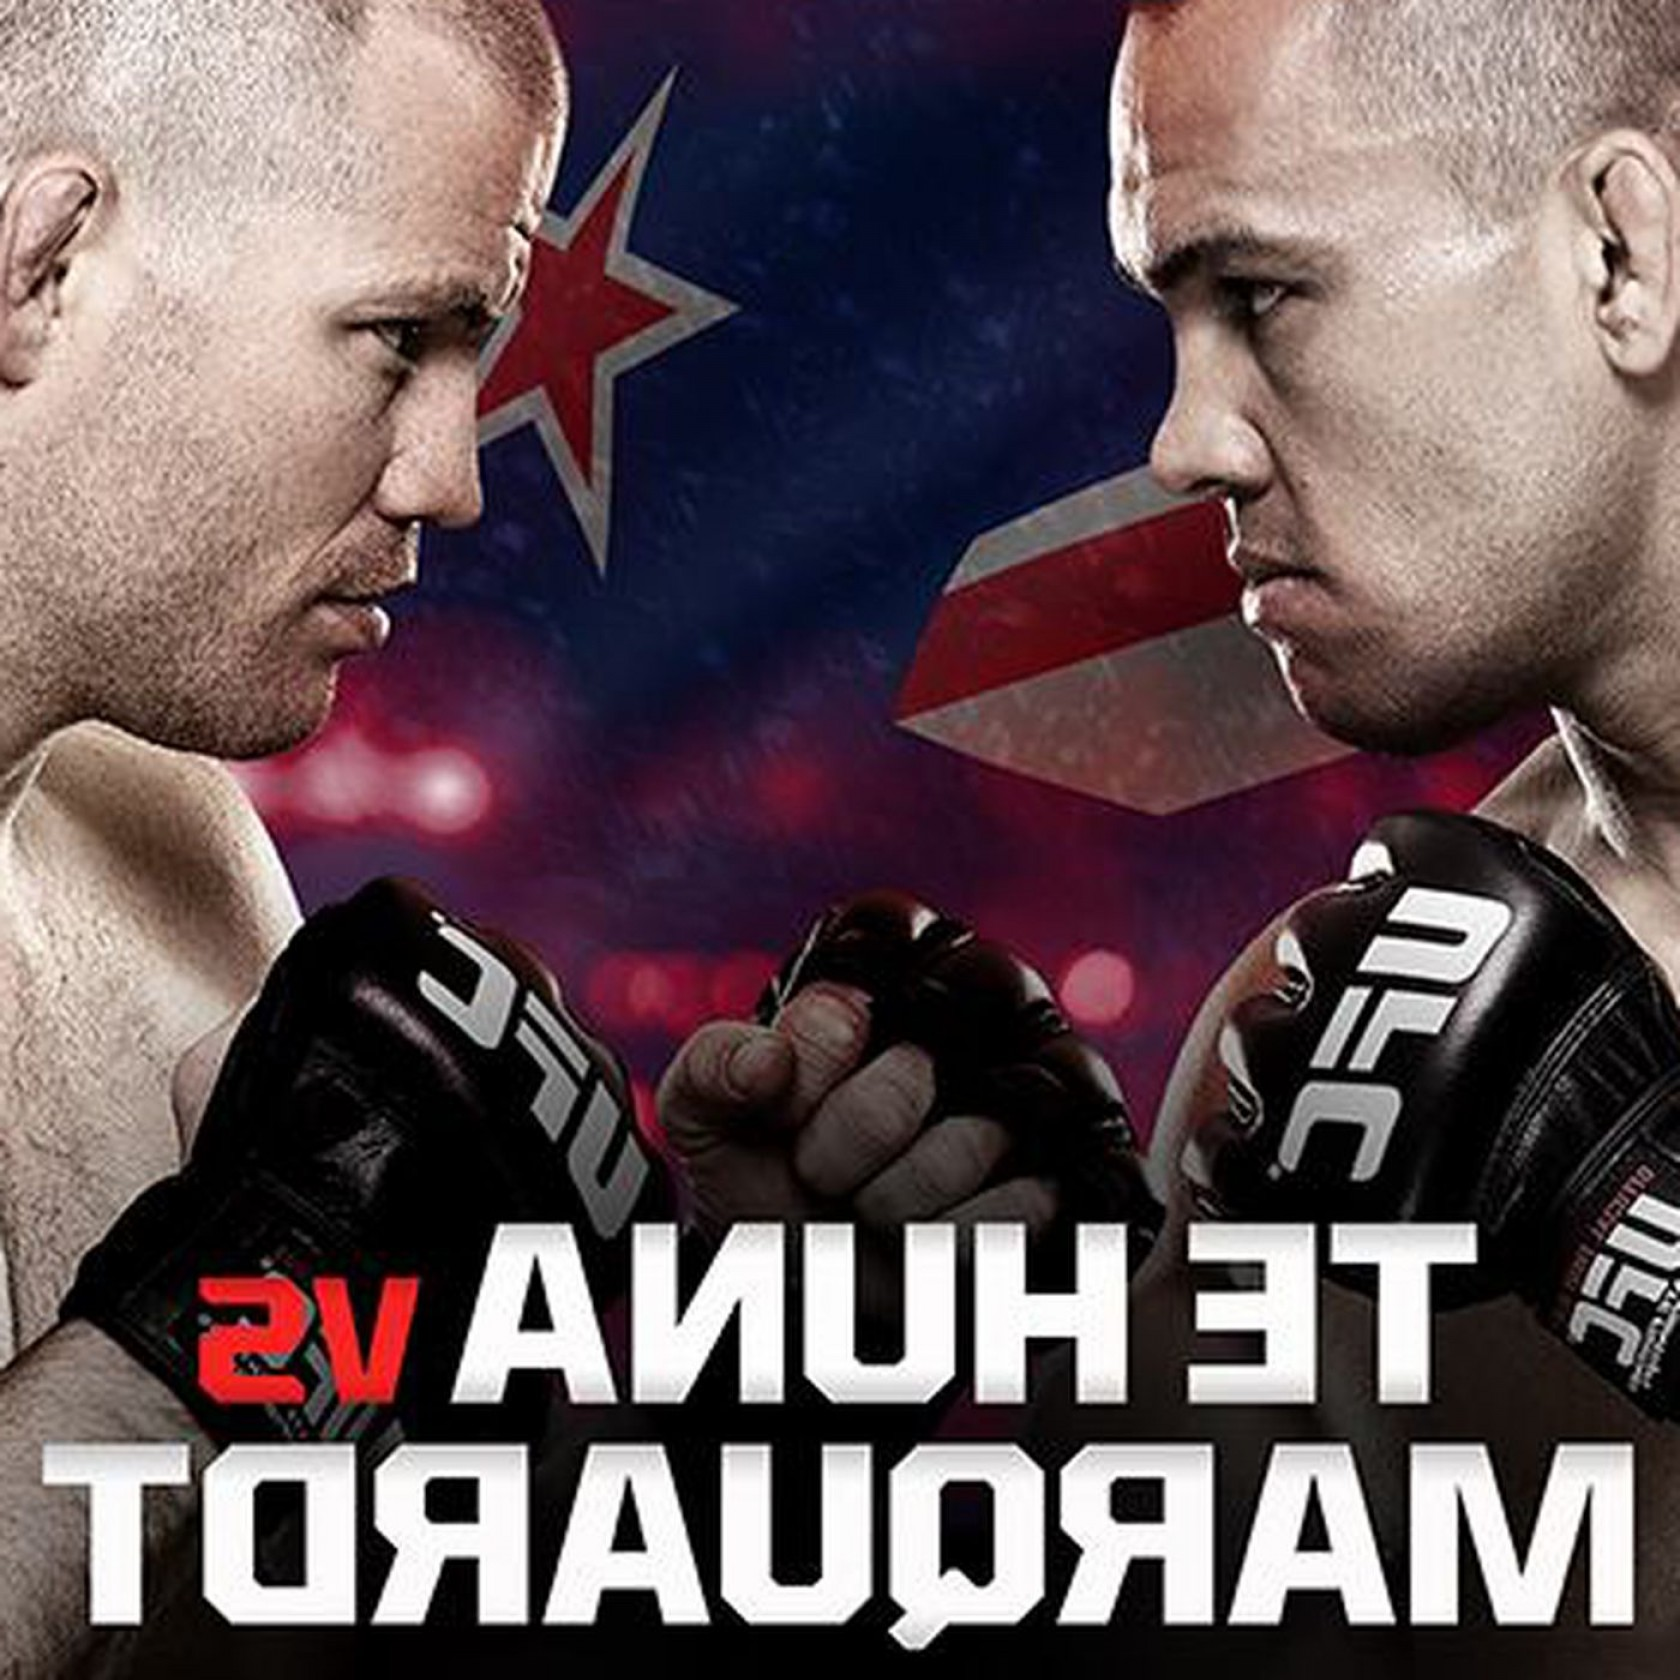 UFC Kick Vector: Ufc Fight Night Te Huna Vs Marquardt Live Results And Play By Play